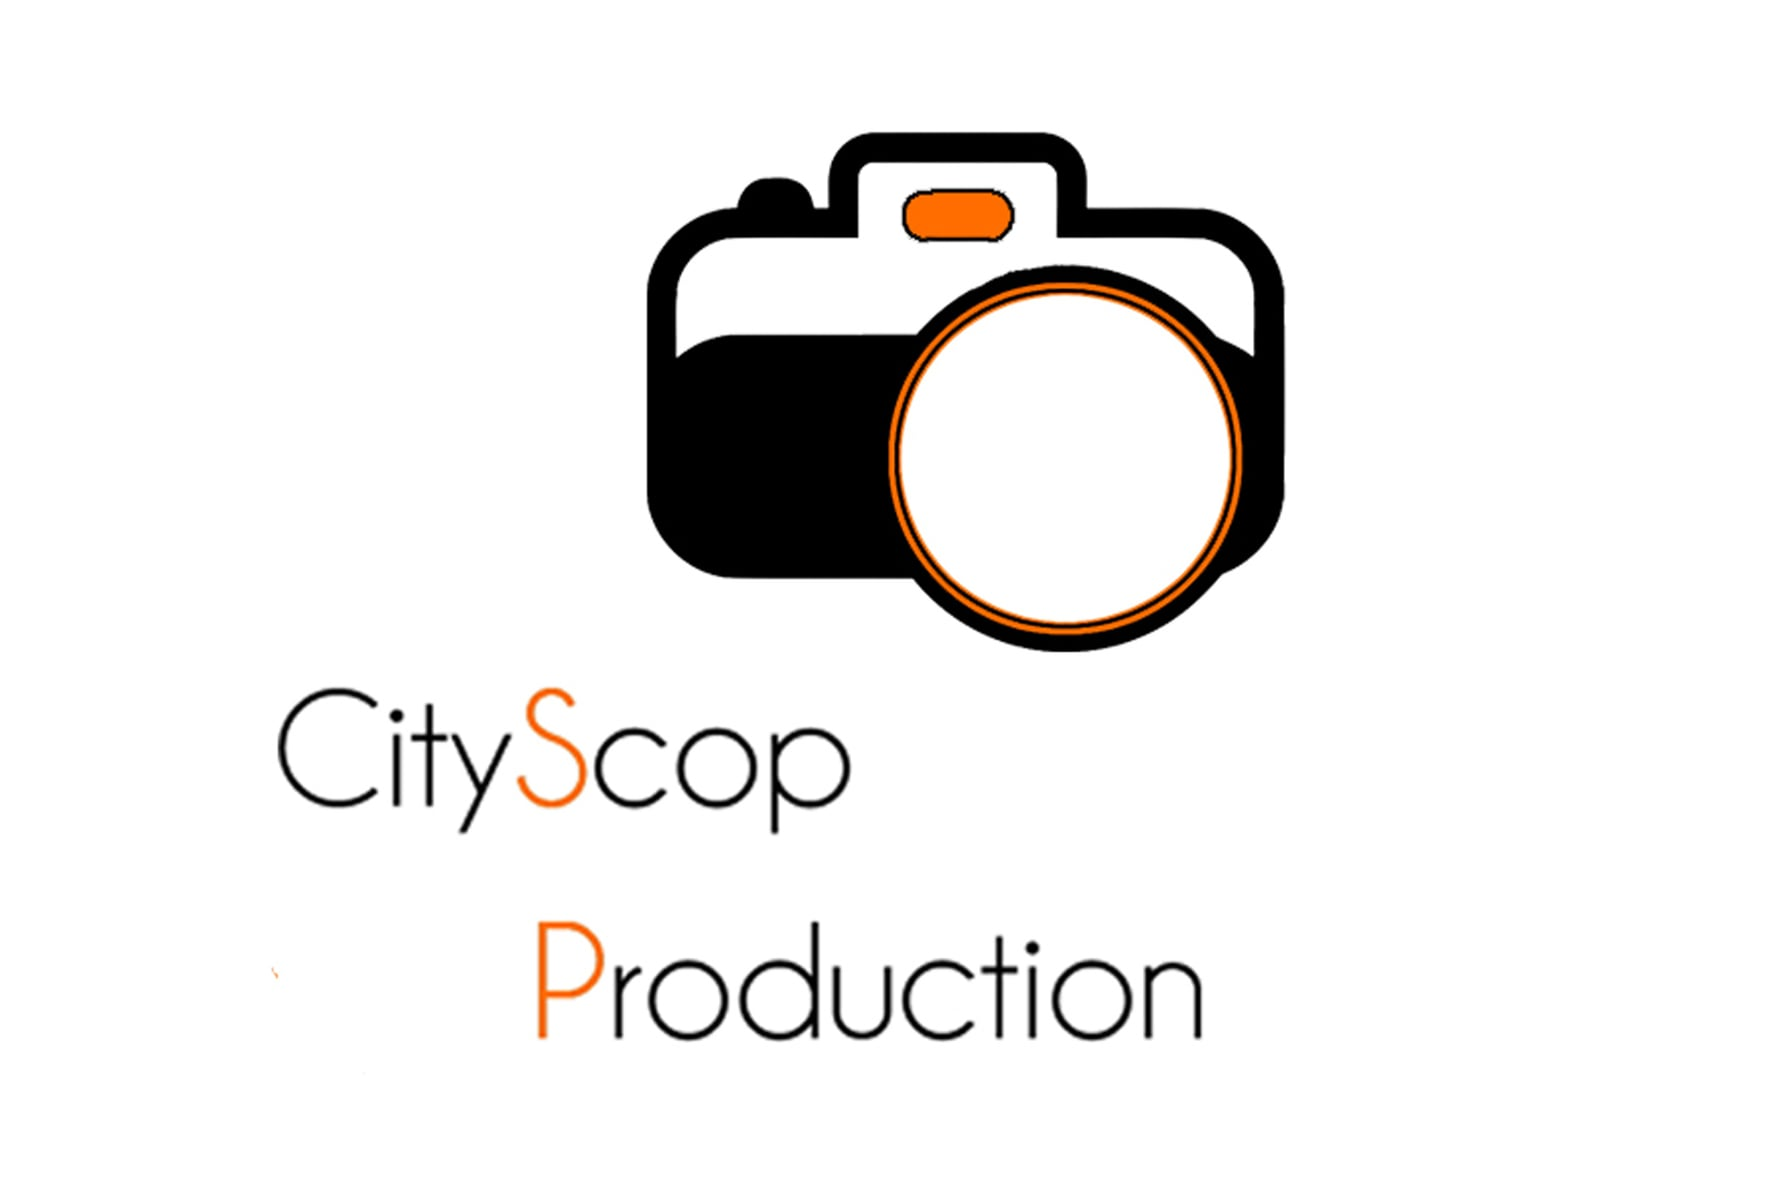 CityScop Production